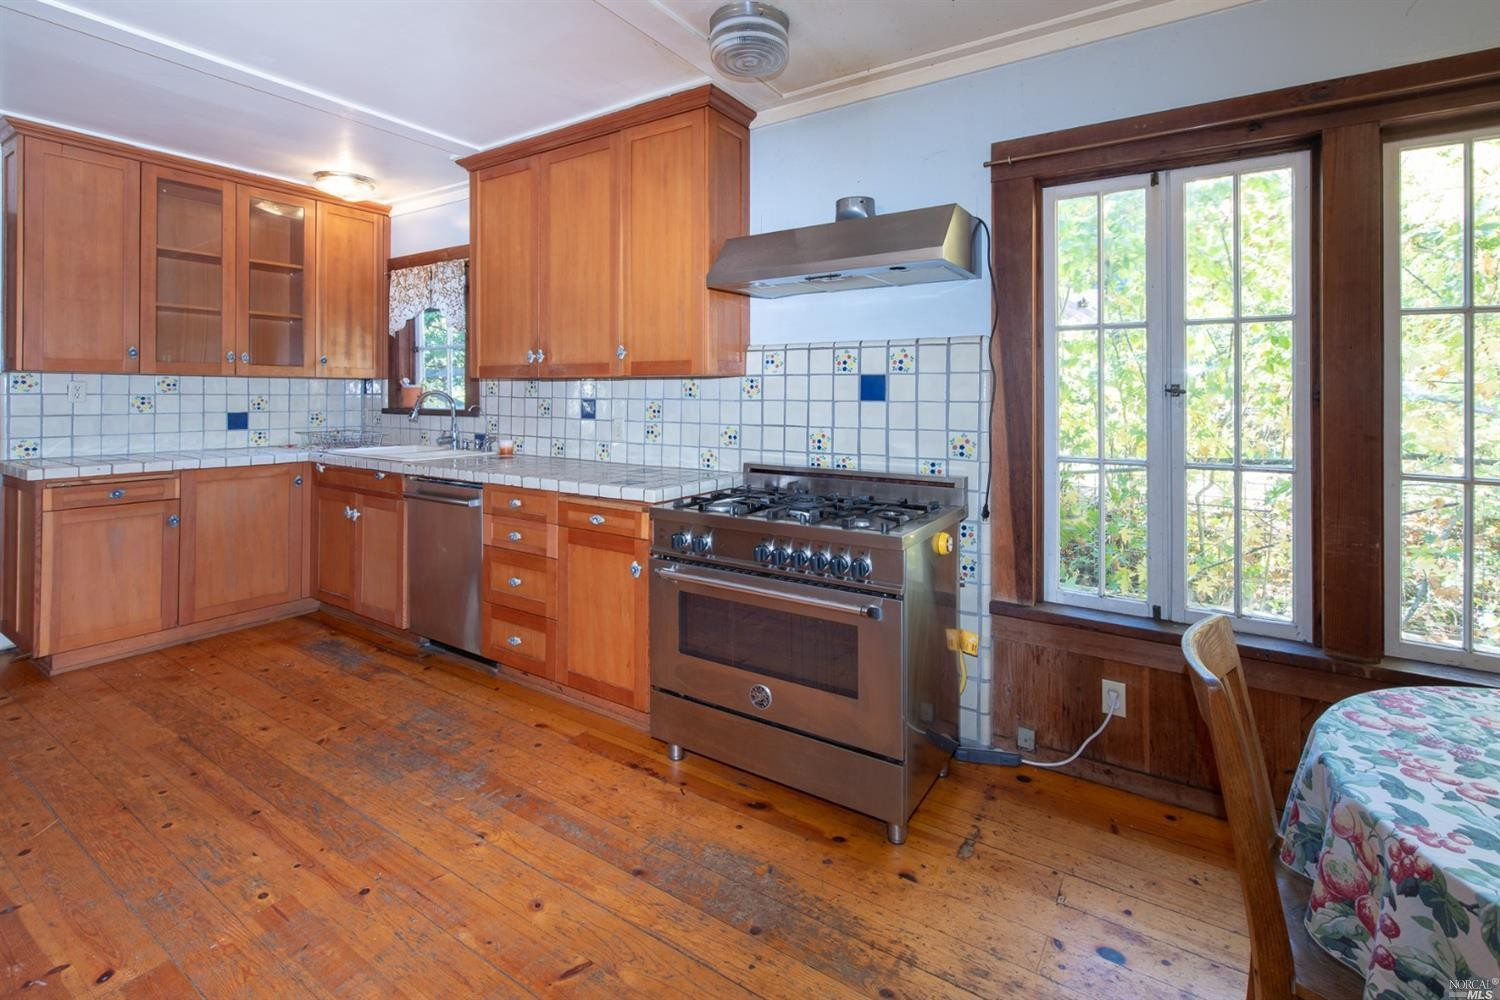 kitchen in a family home for sale, Philo, CA